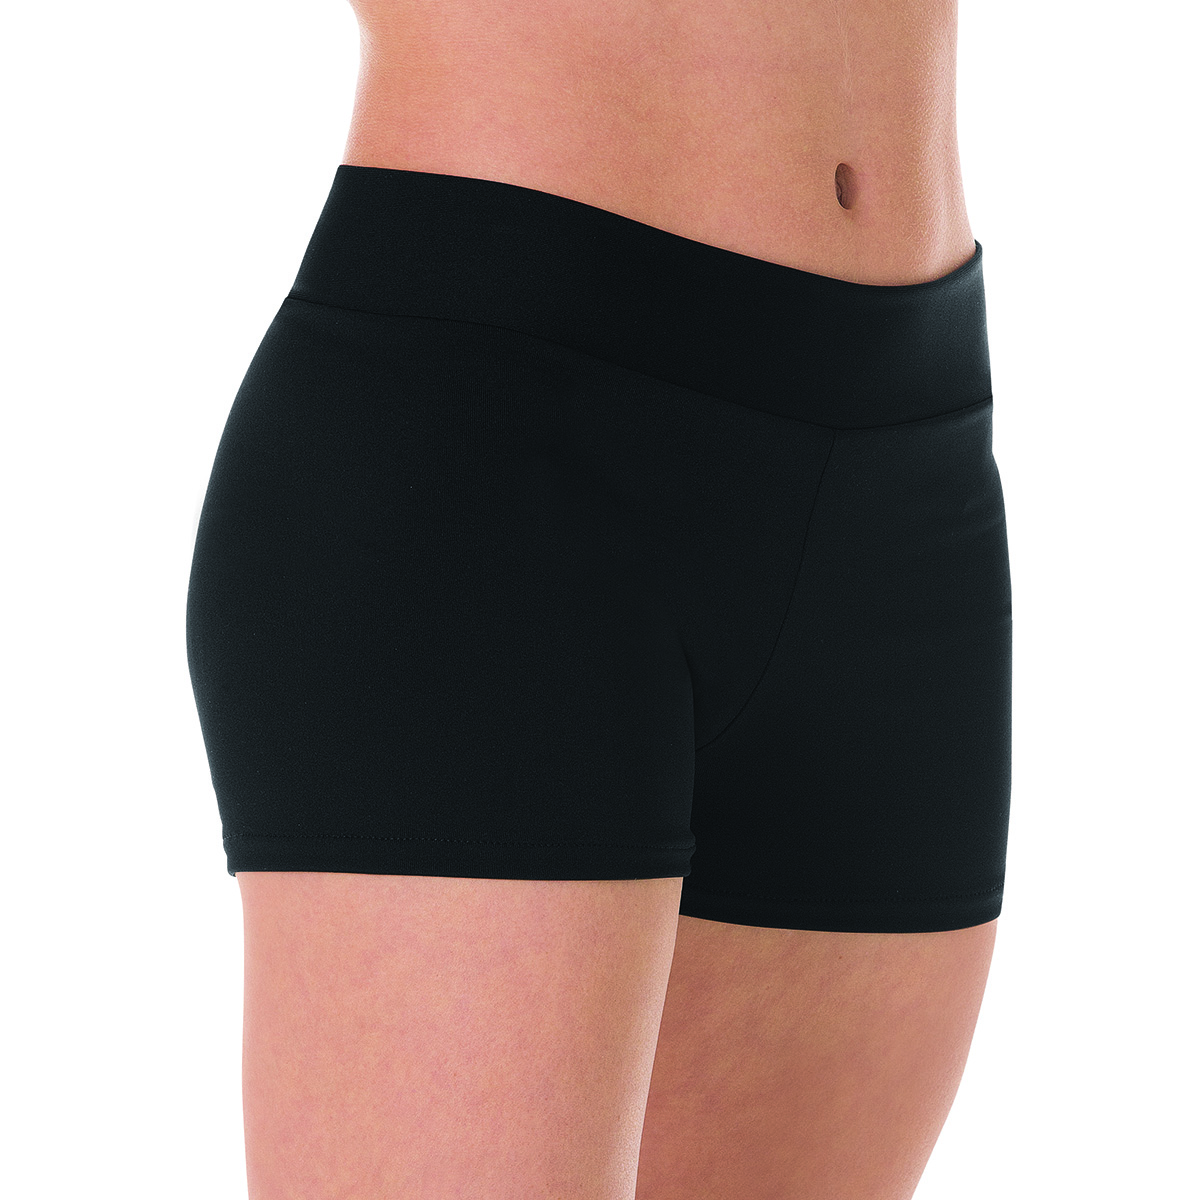 Mid-Rise Elastic Waist Hot Shorts - Black